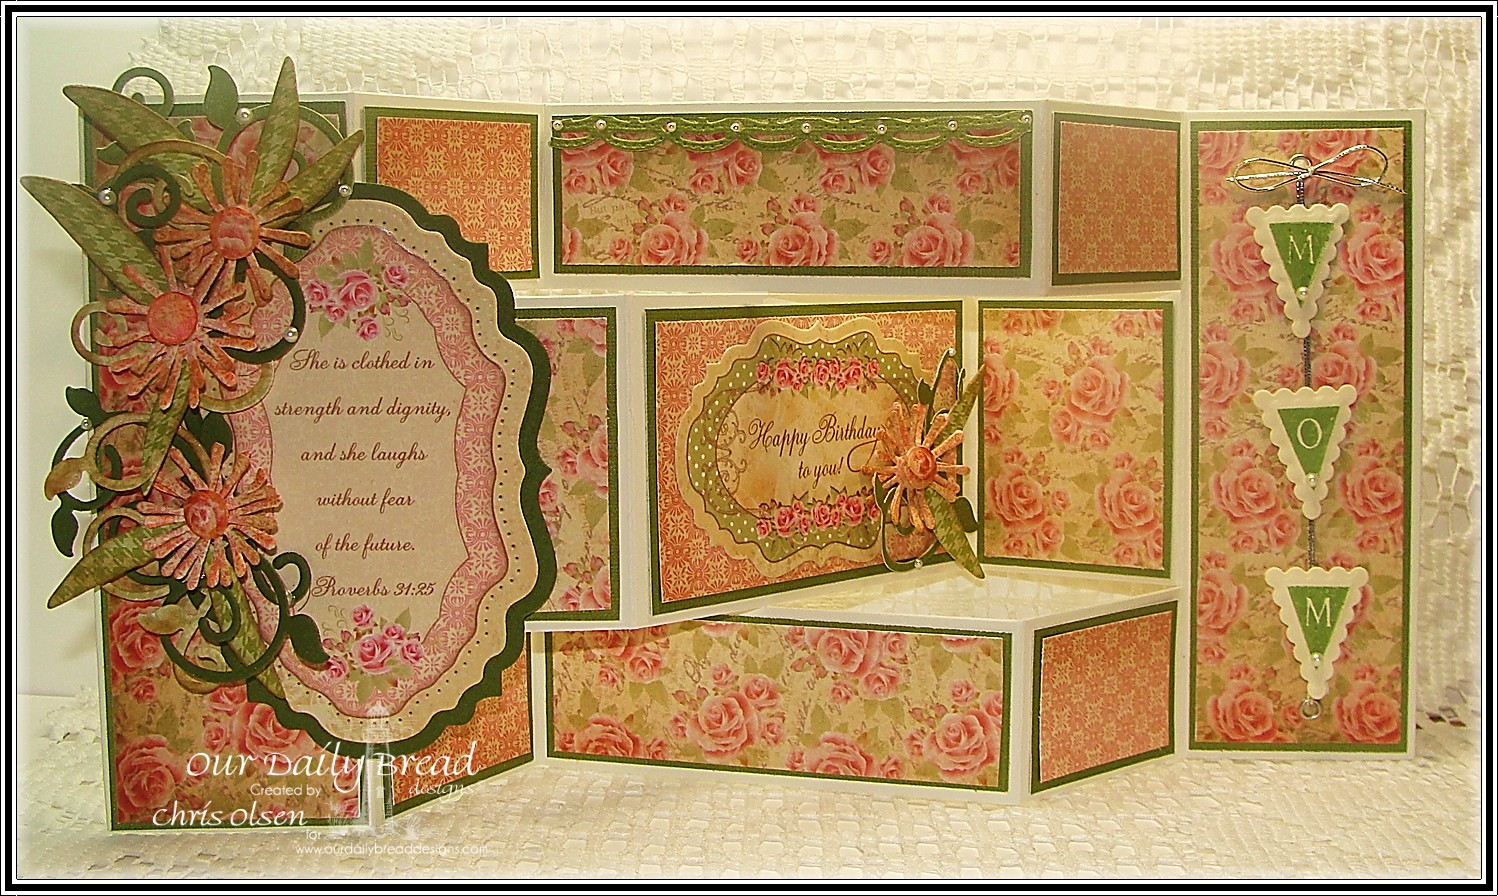 Stamps - Our Daily Bread Designs Pennant Alphabet Solid, ODBD Blushing Rose Paper Collection, ODBD Custom Asters and Leaves Die, ODBD Custom Fancy Foliage Dies, ODBD Custom Vintage Flourish Pattern Die, ODBD Custom Pennants Die, ODBD Tri-Shutter Fancy Folds Card Kit